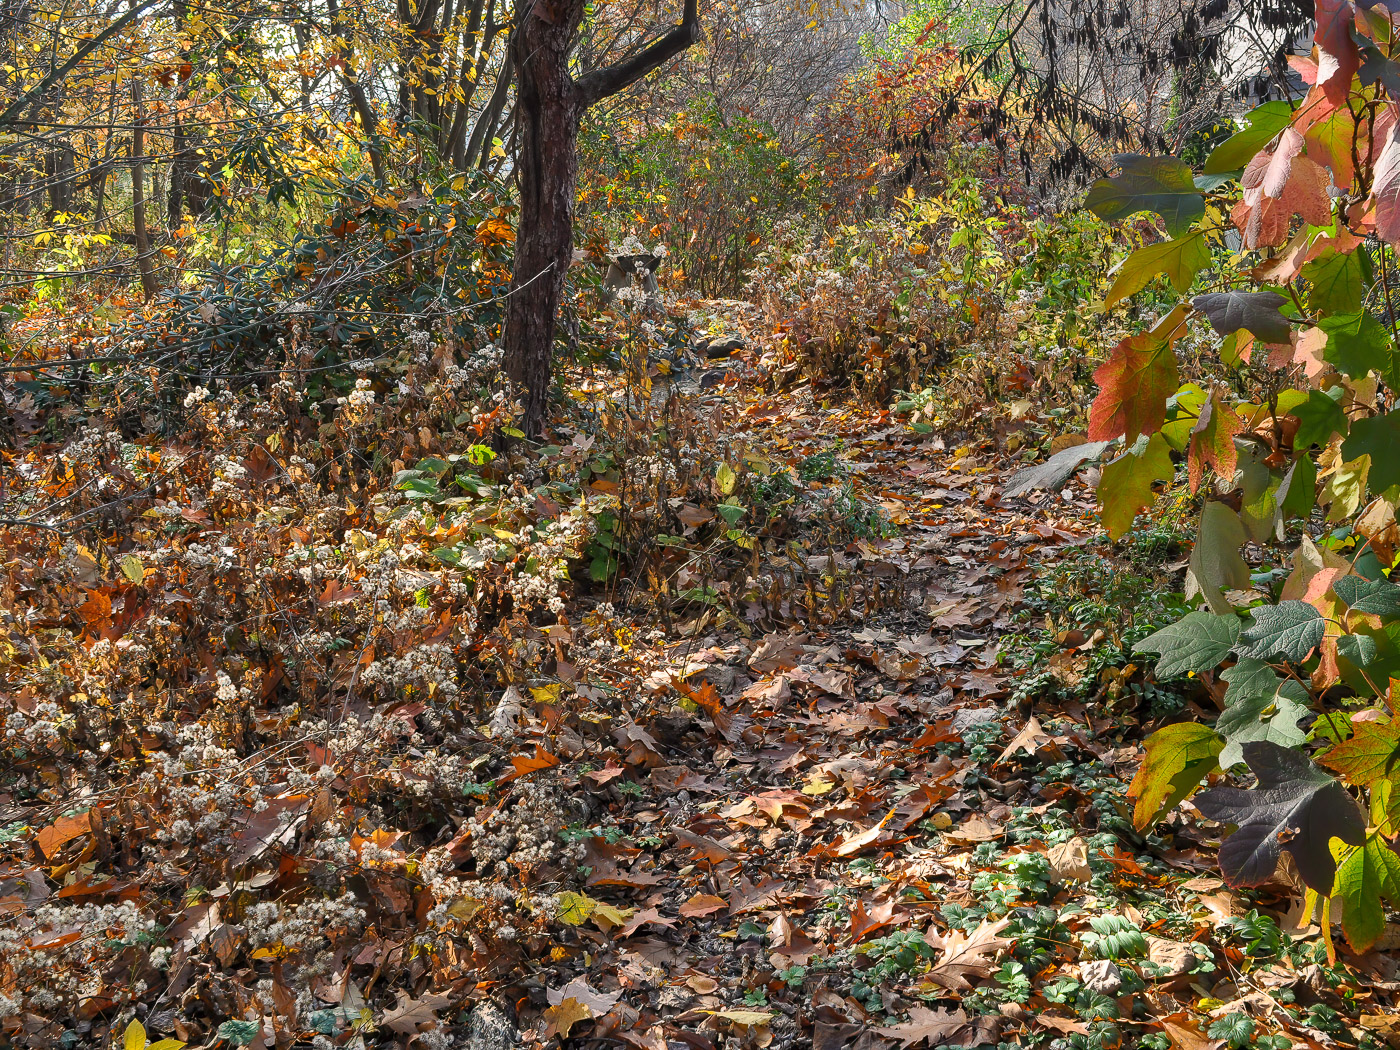 This backyard bed needs no clean-up. The fallen leaves and perennial seed heads are important for wildlife and plant communities.